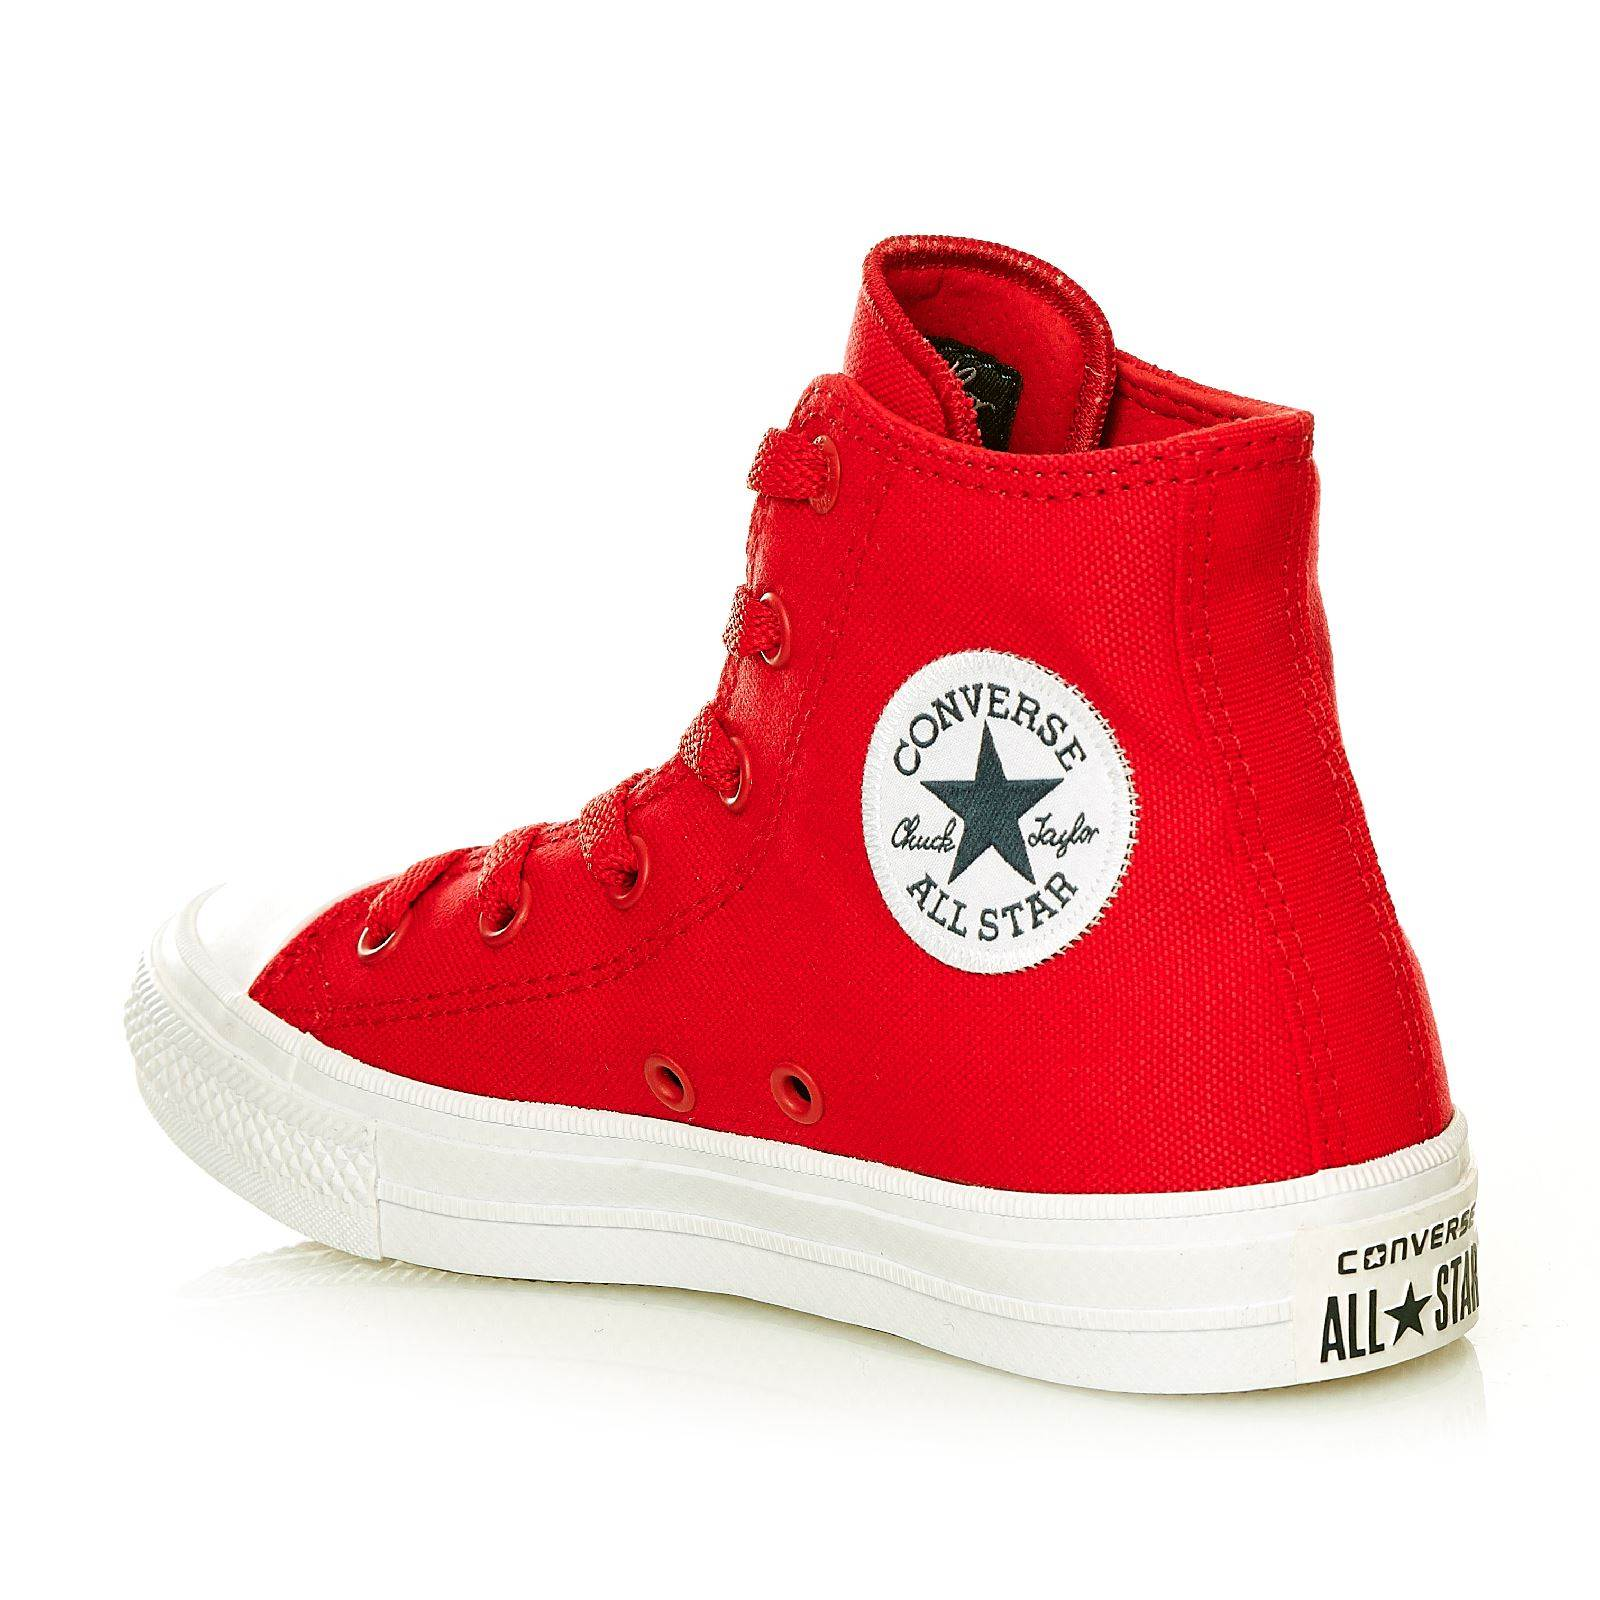 5ef3558ffe127 converse montante rouge